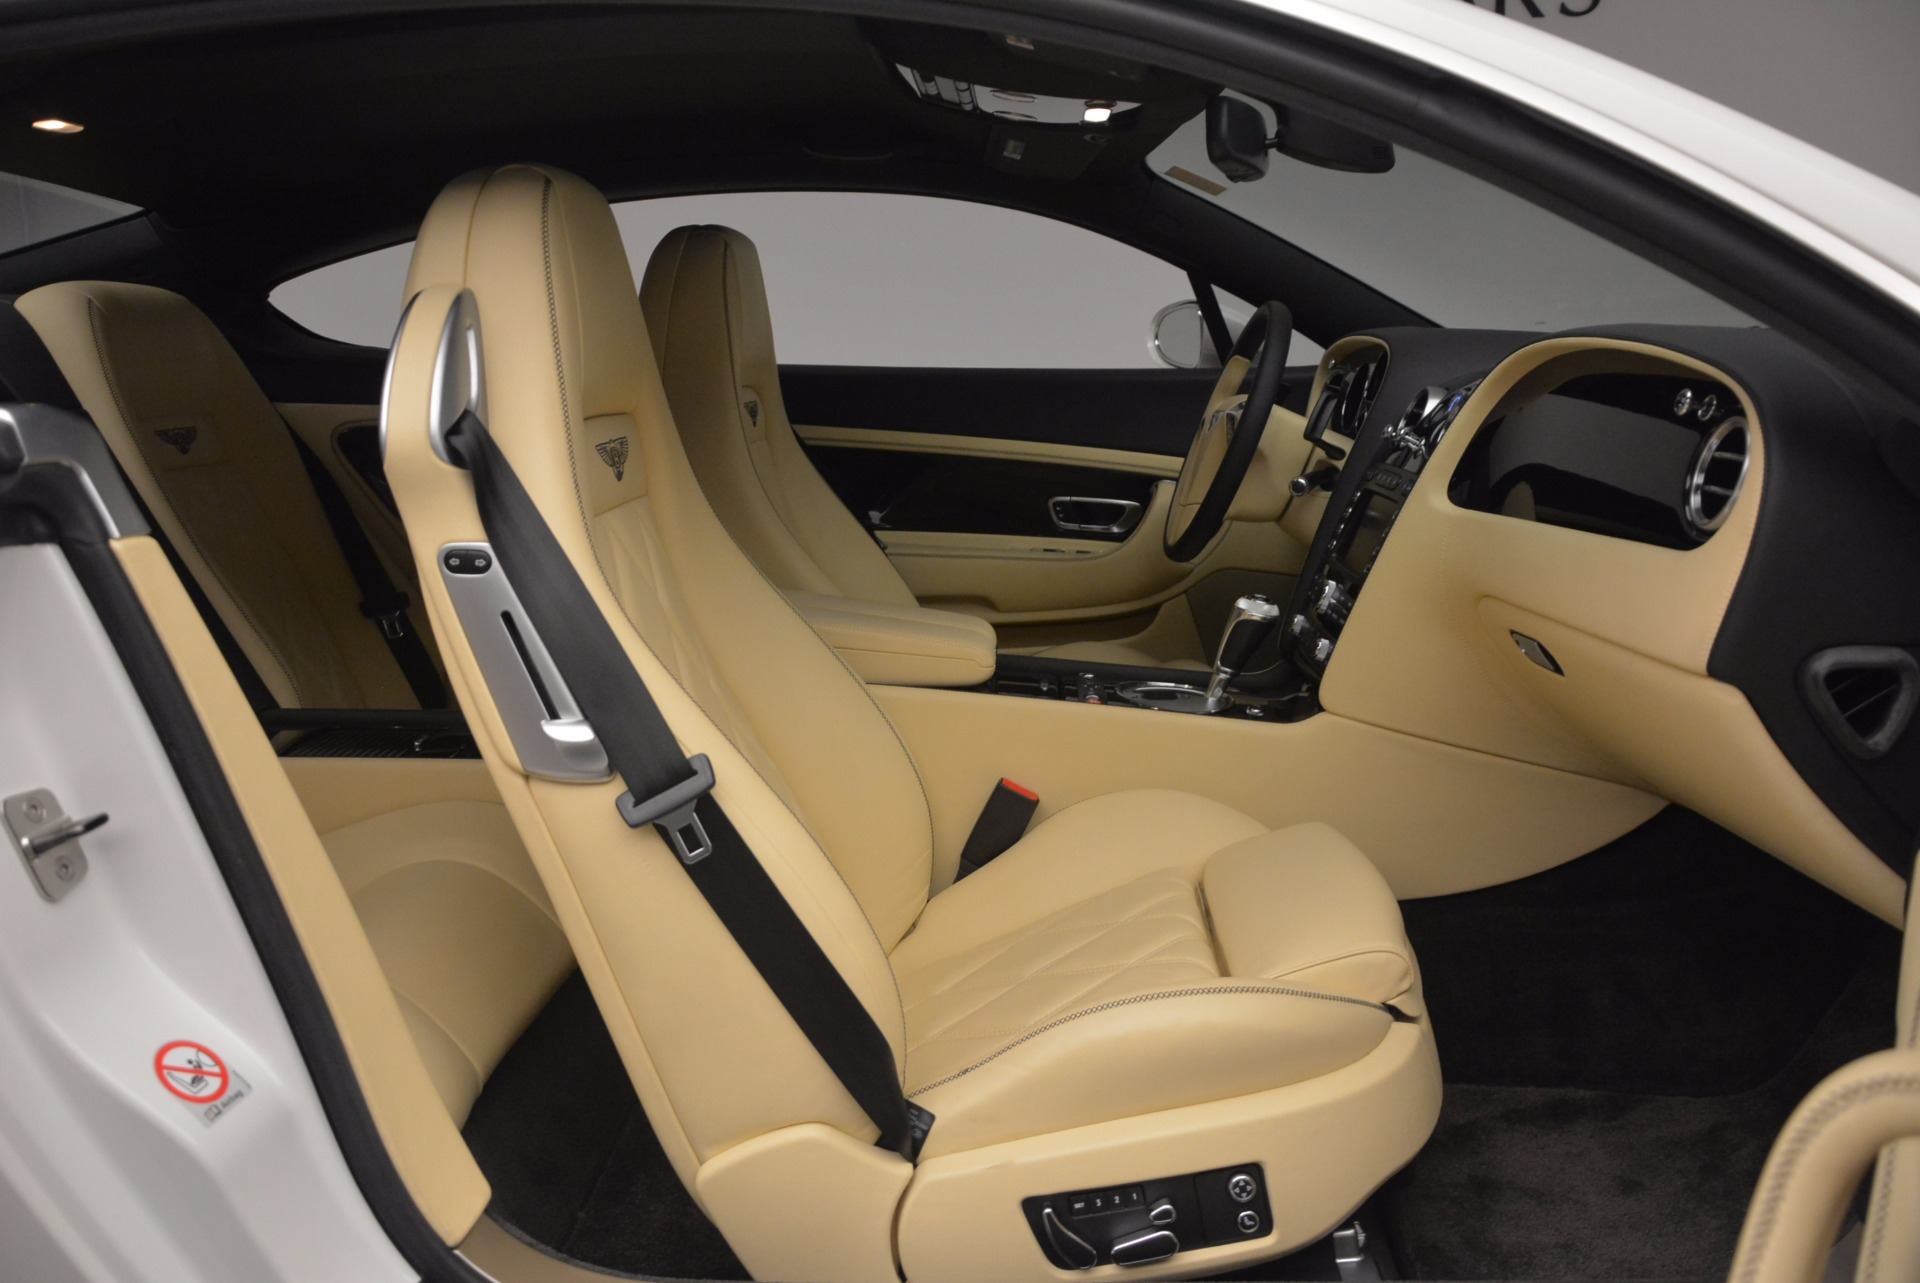 Used 2008 Bentley Continental GT Speed For Sale In Westport, CT 1552_p33